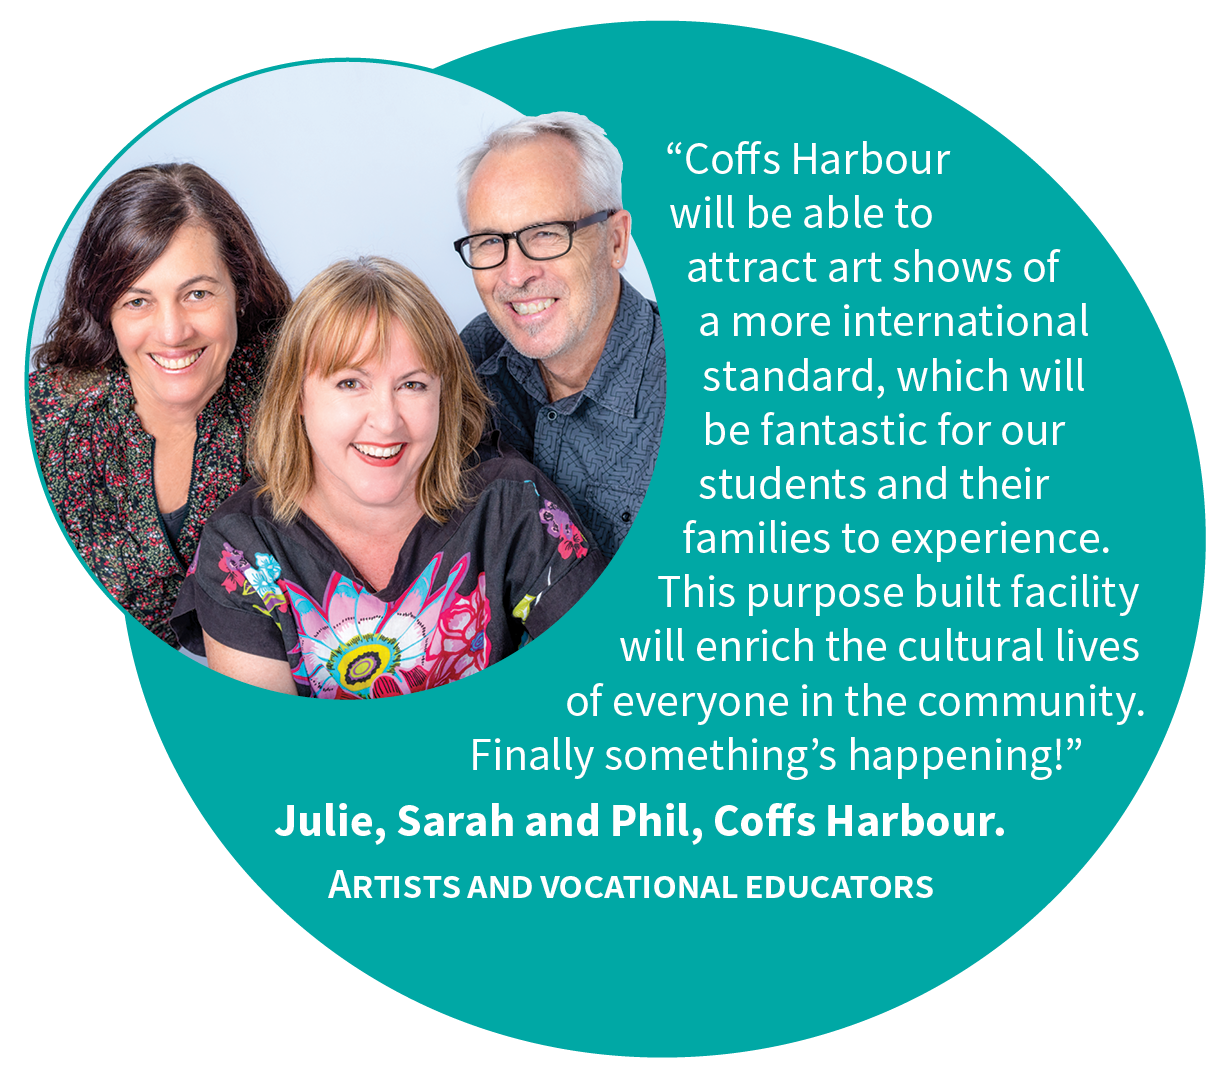 Cultural and Civic Space for Coffs Harbour - Artists and Educators